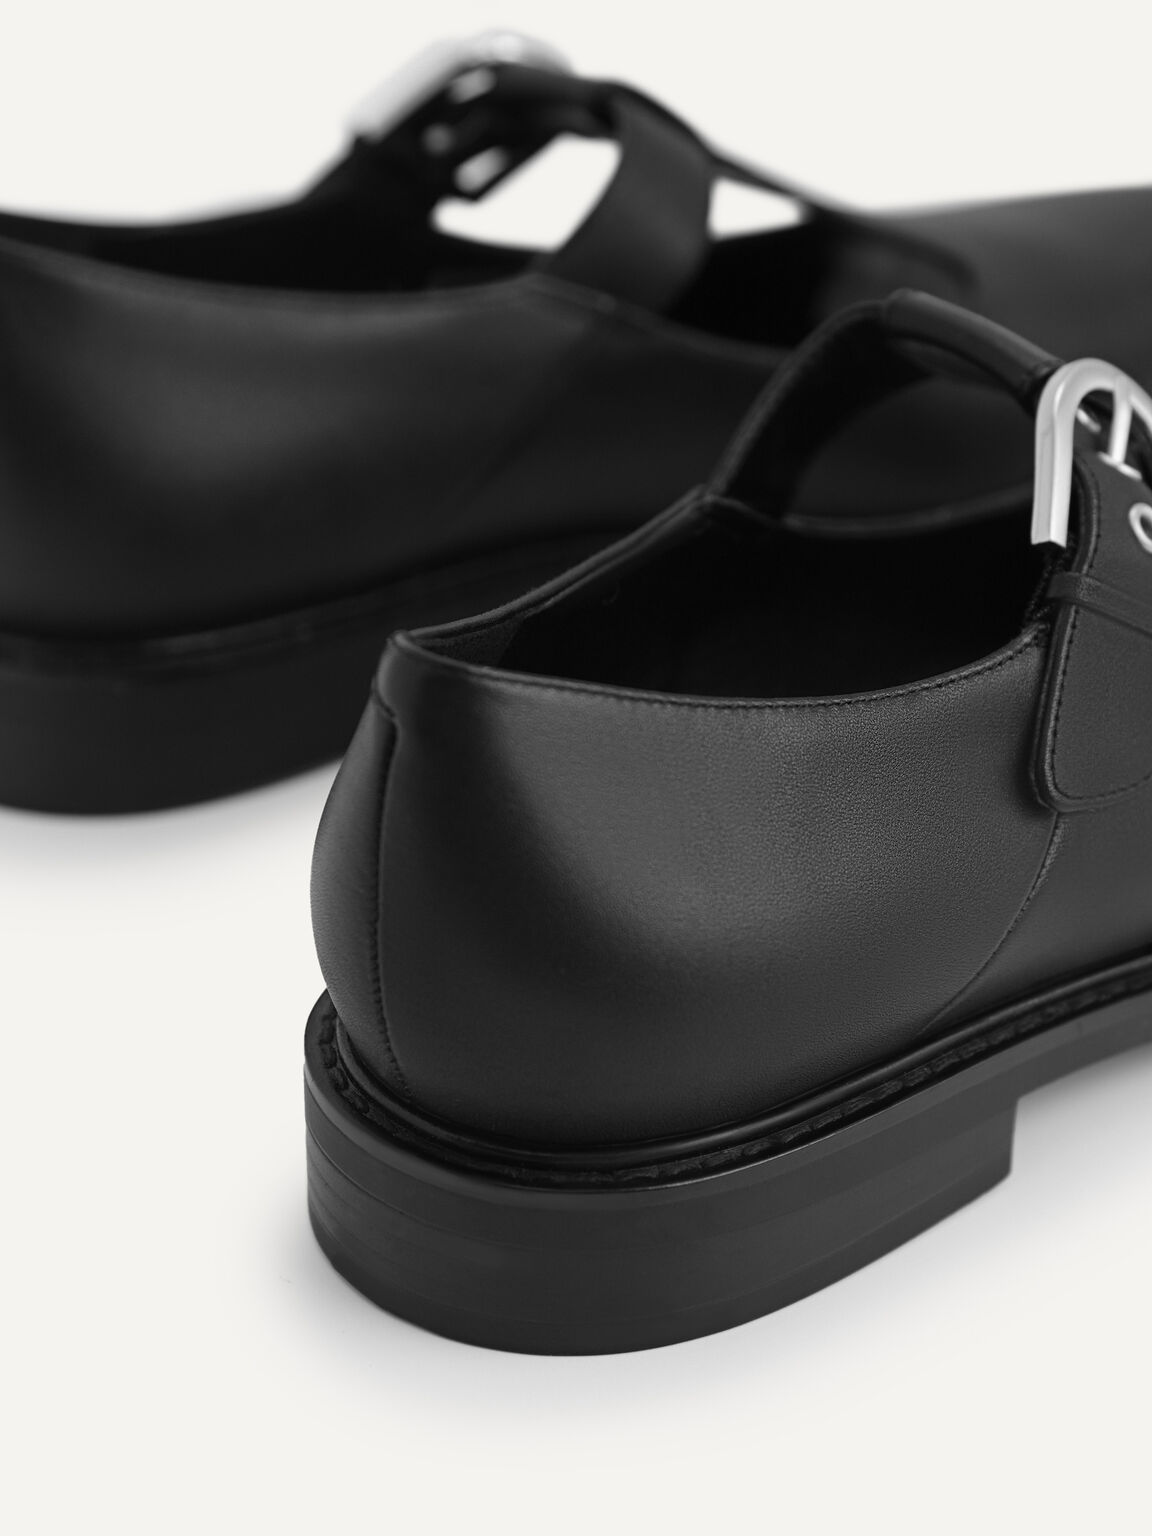 Leather Mary Jane Shoes, Black, hi-res